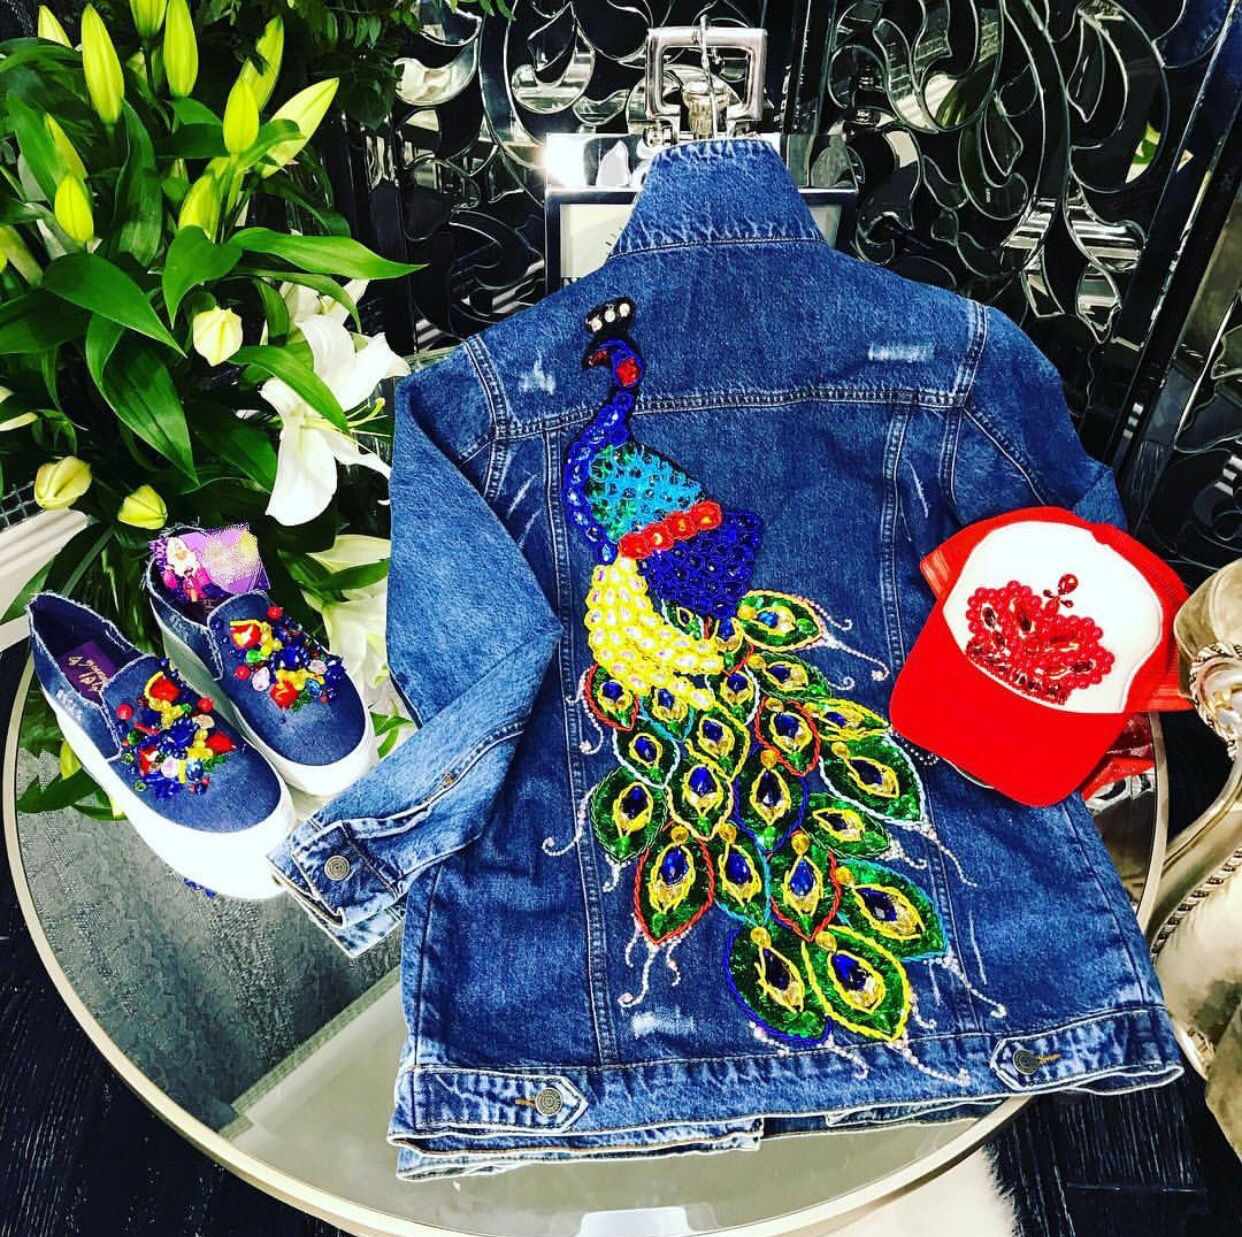 Embroidered embellished peacock denim jacket and accessories